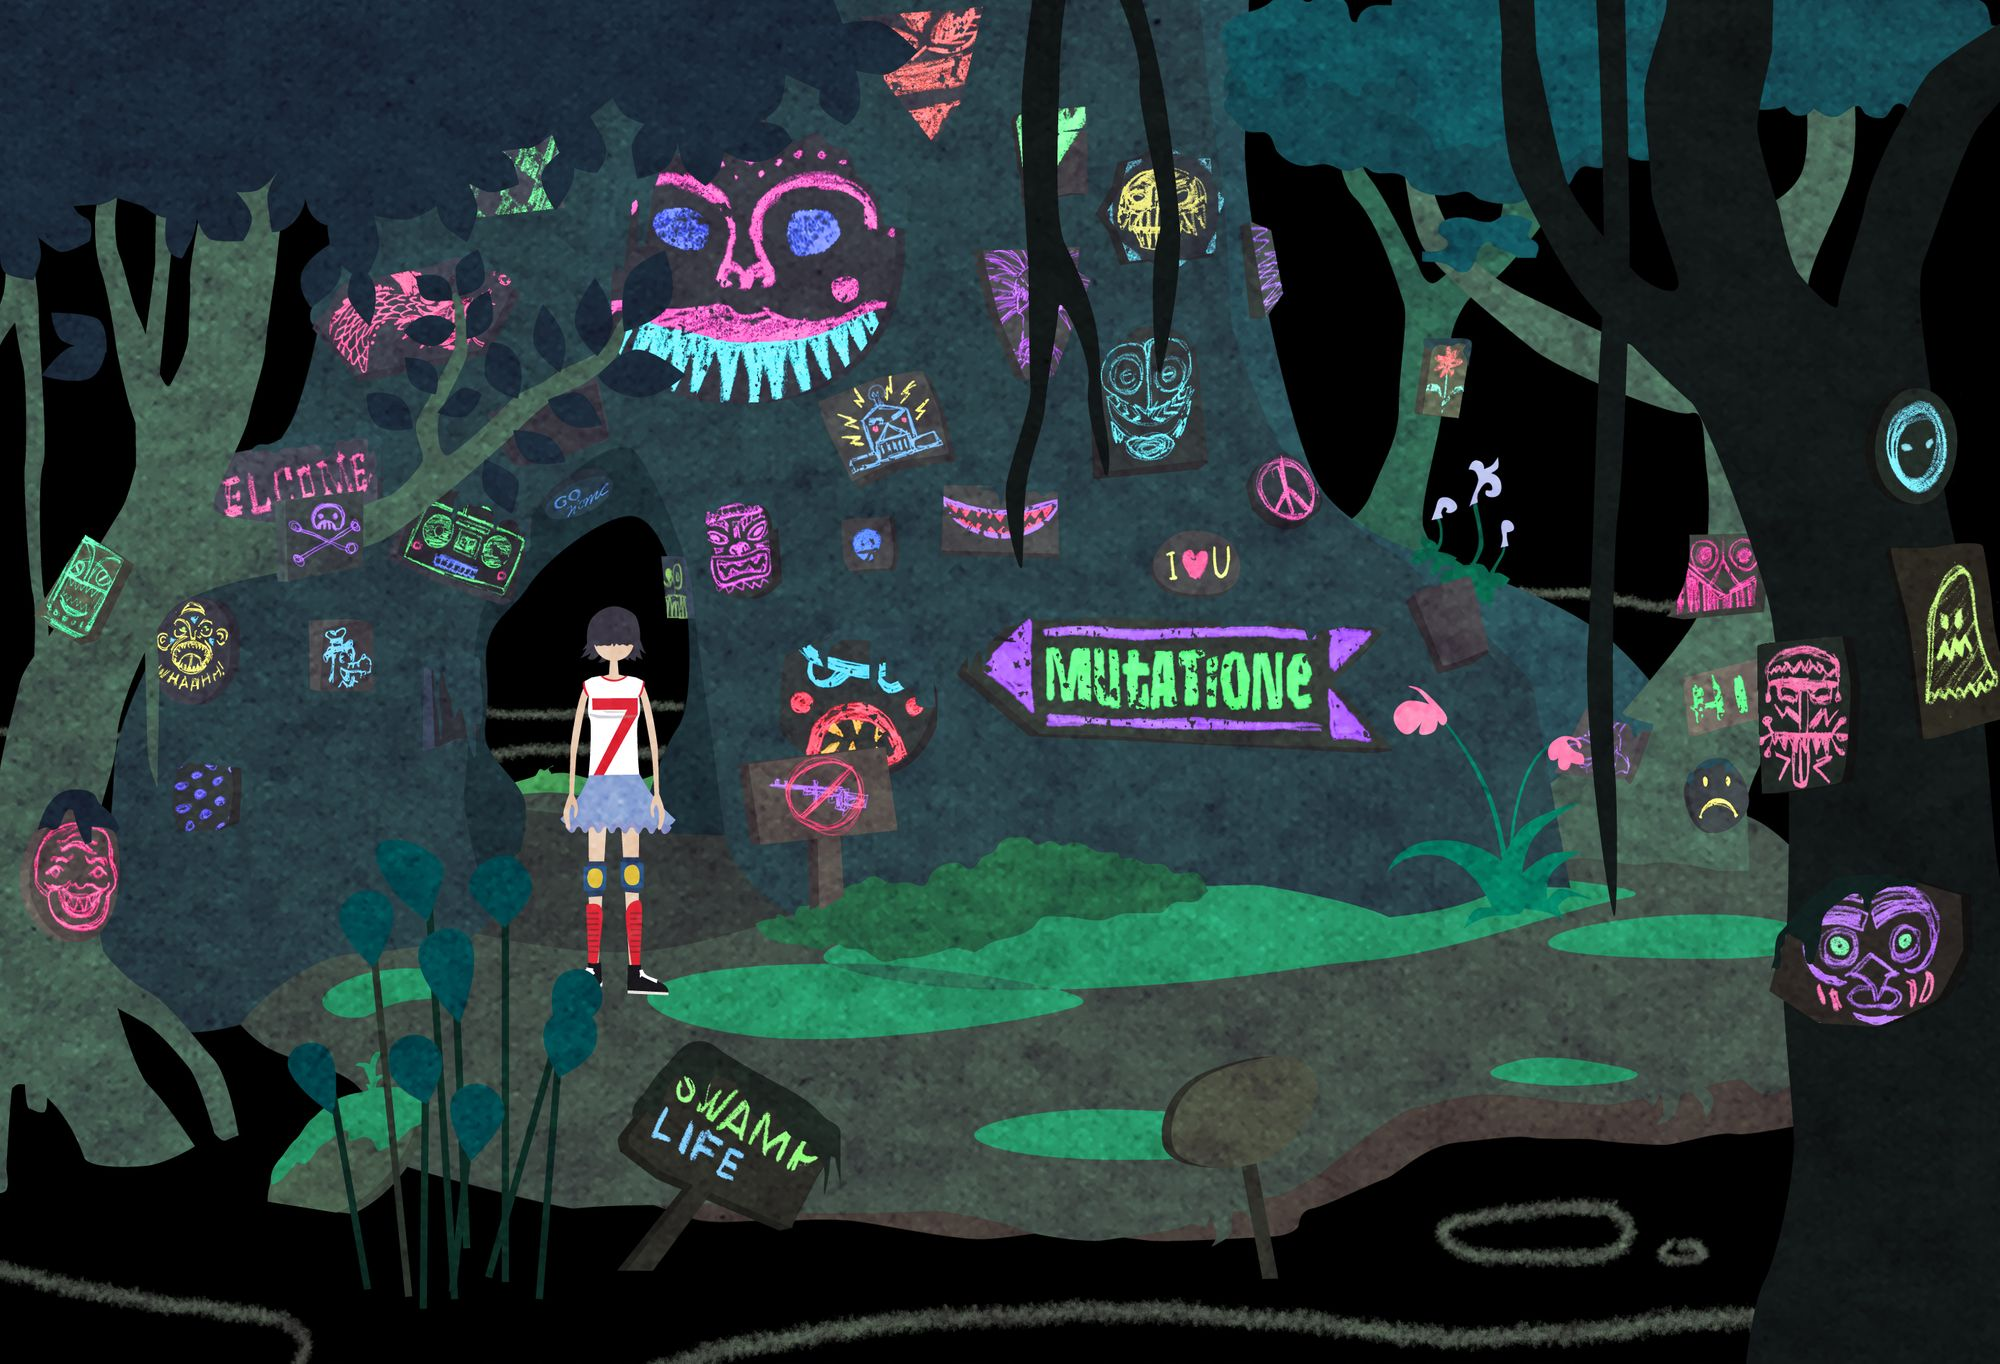 "Image of a discarded player character standing in a swamp scene filled with neon-colored signs, of which one says ""Mutatione"" and points to a tunnel in a treetrunk."